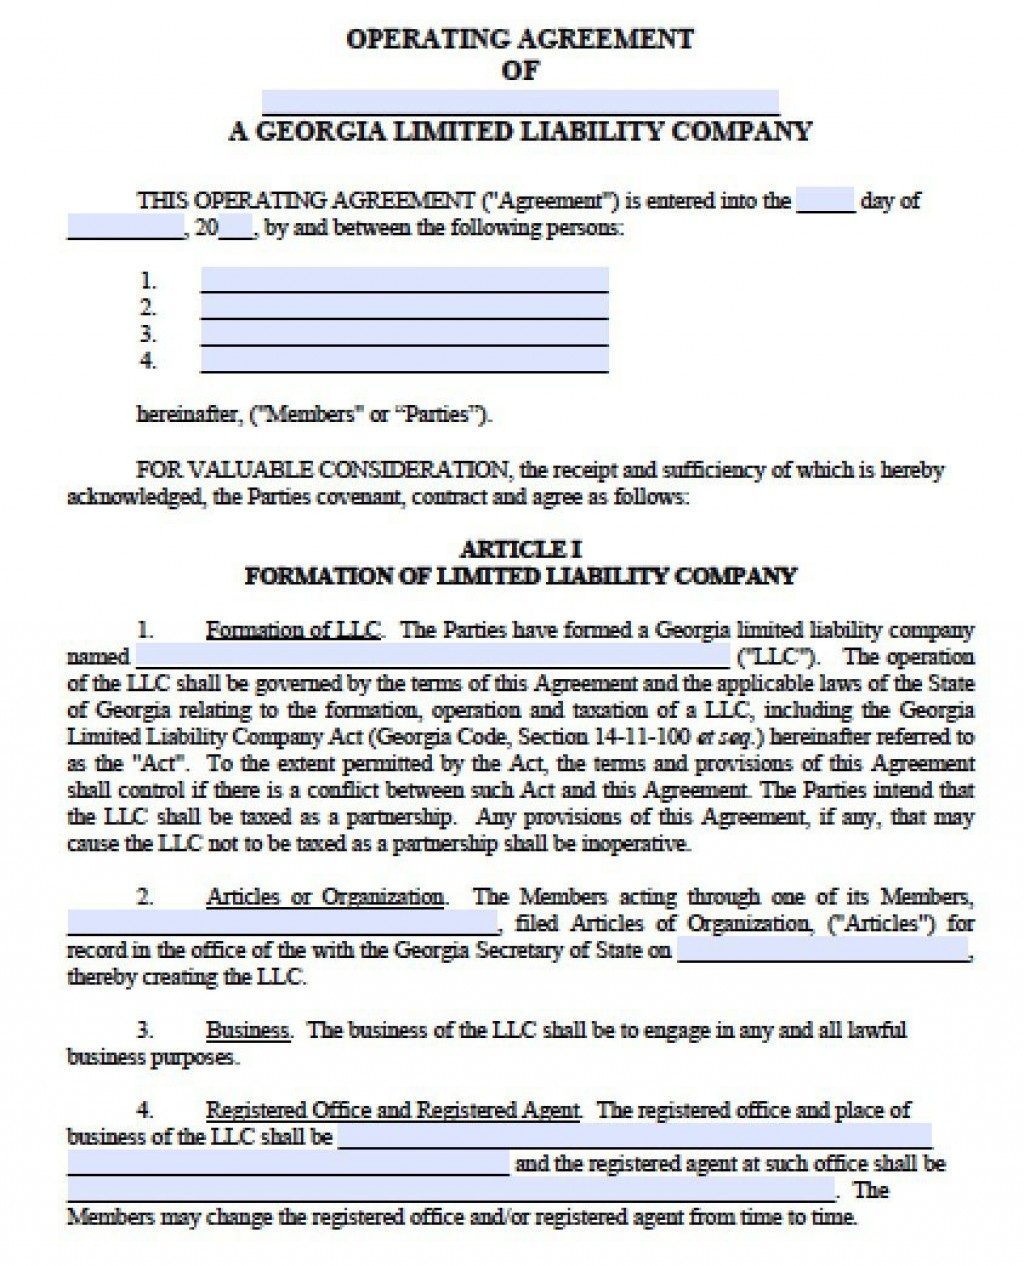 003 Fearsome Operation Agreement Llc Template Highest Quality  Operating Florida Indiana Single Member CaliforniaLarge